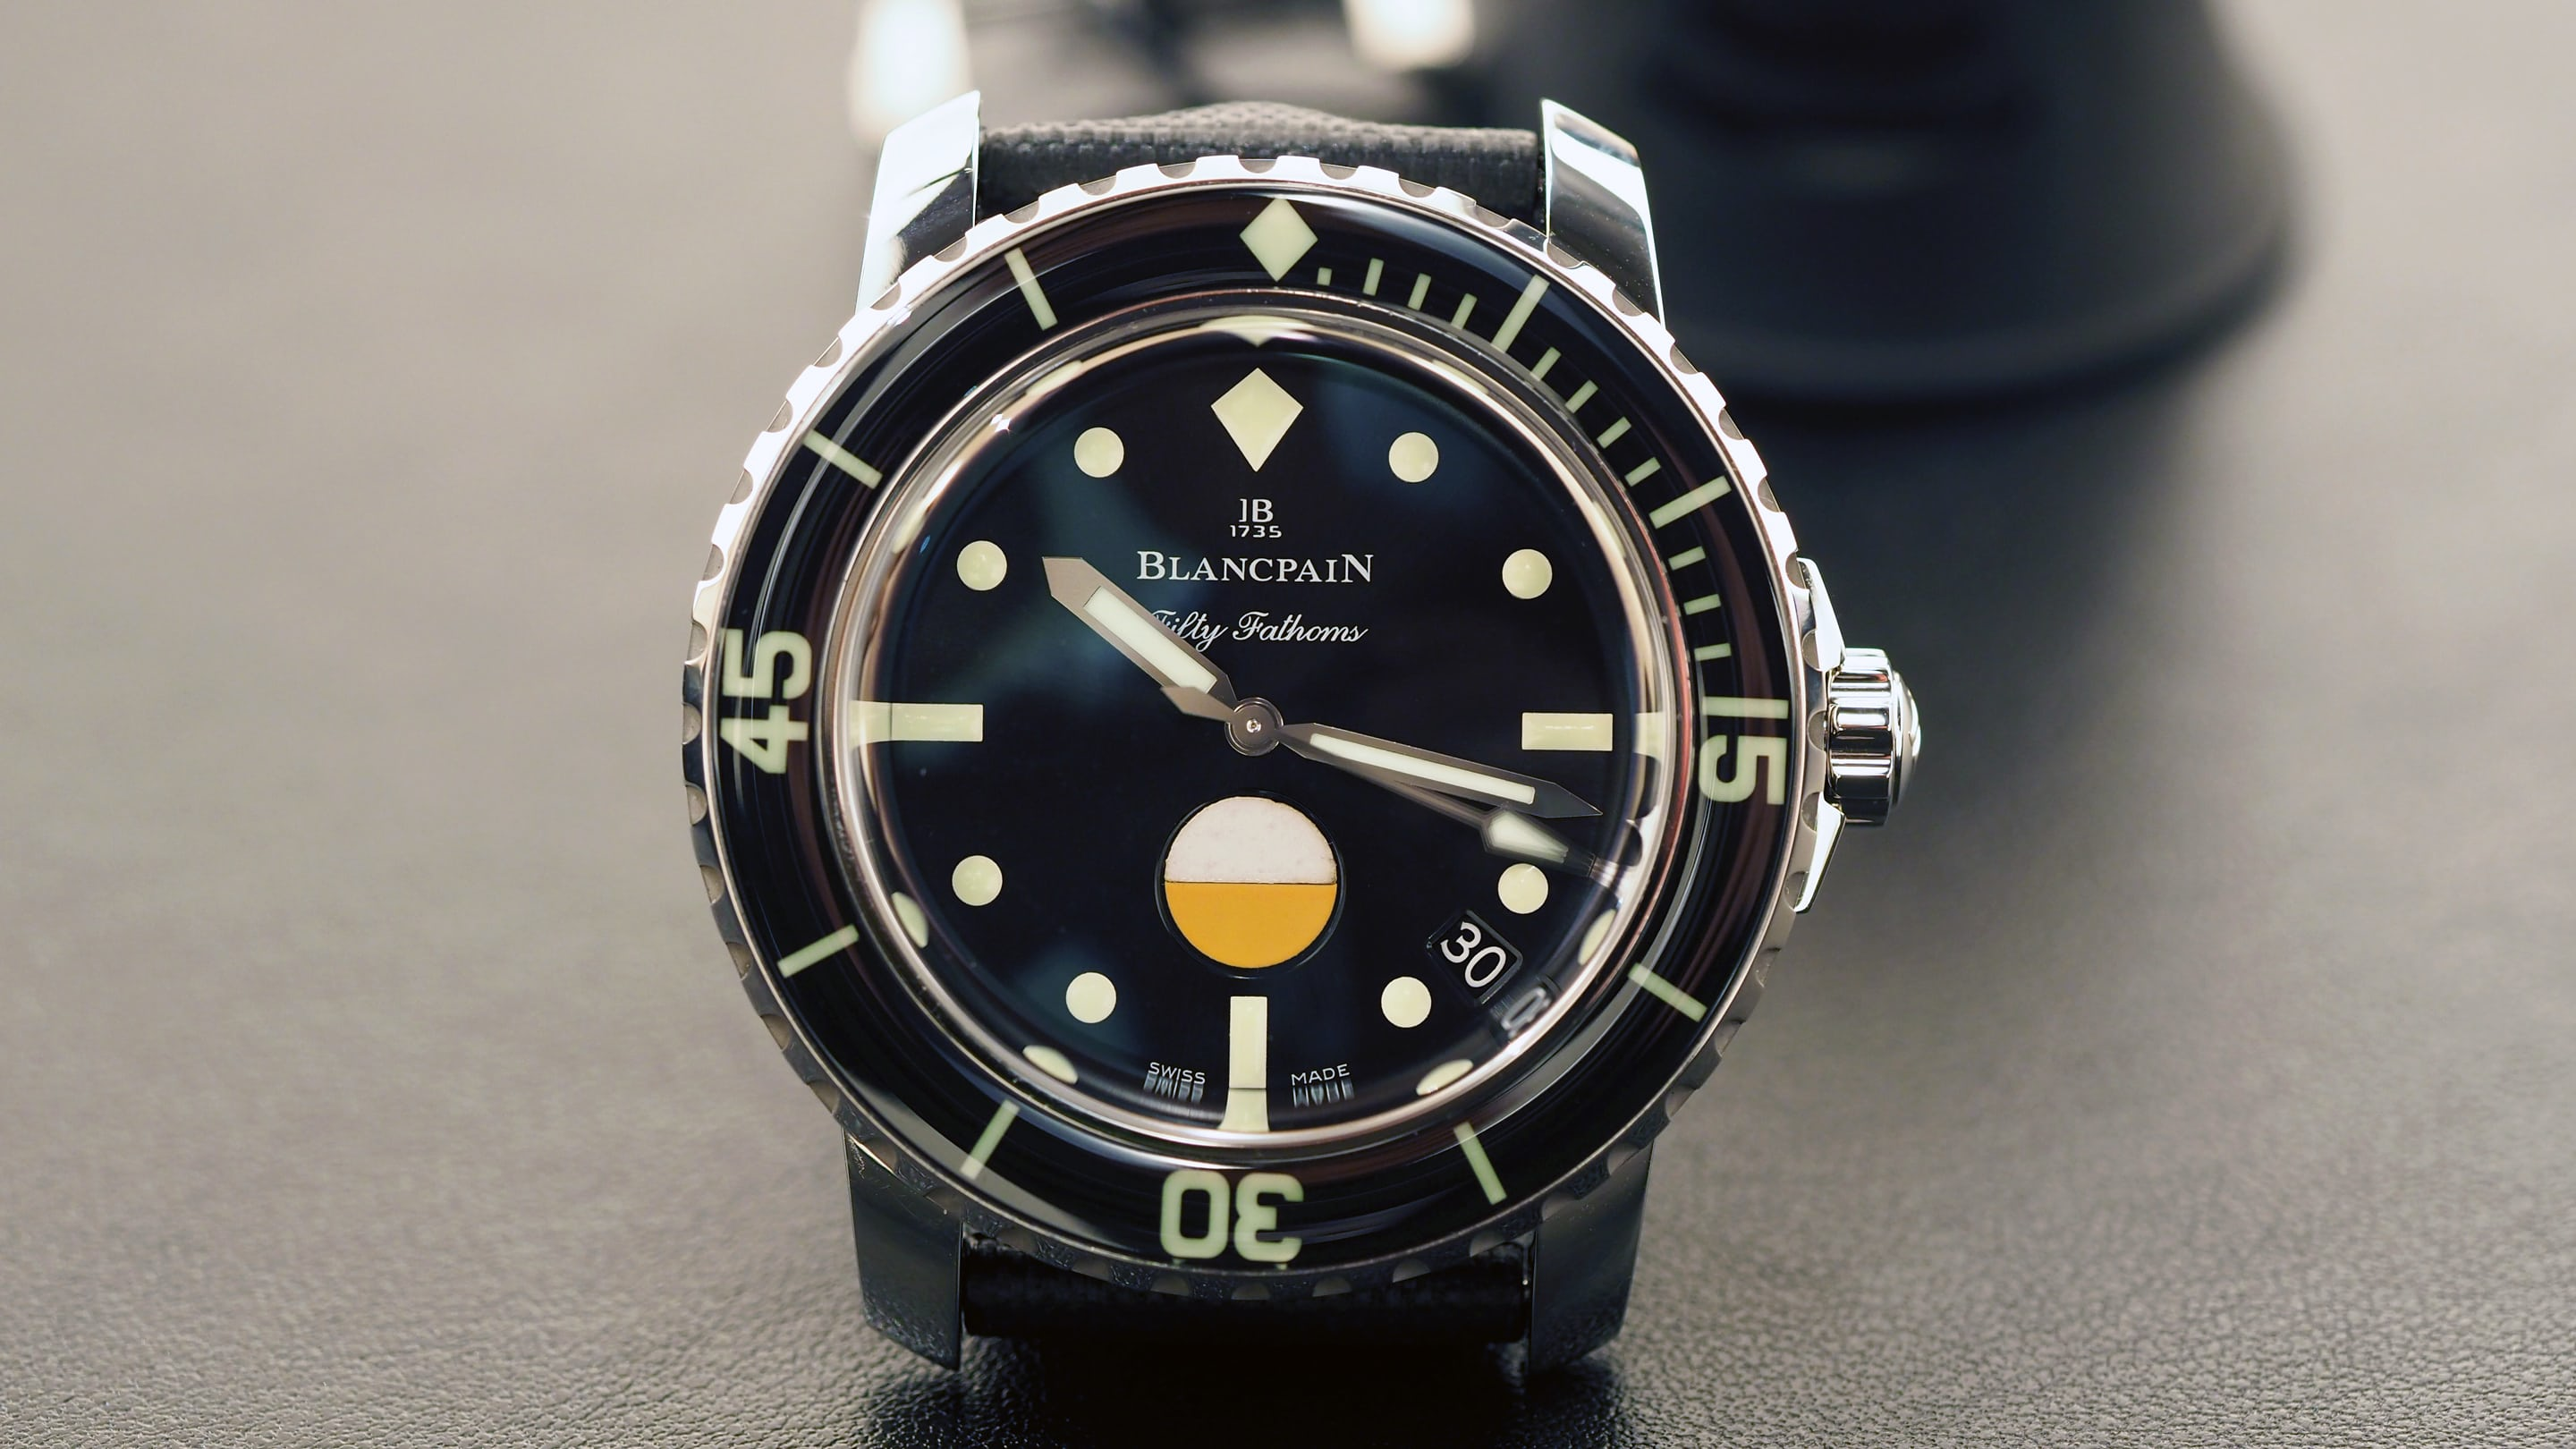 Introducing The Blancpain Tribute To Fifty Fathoms Mil Spec Live